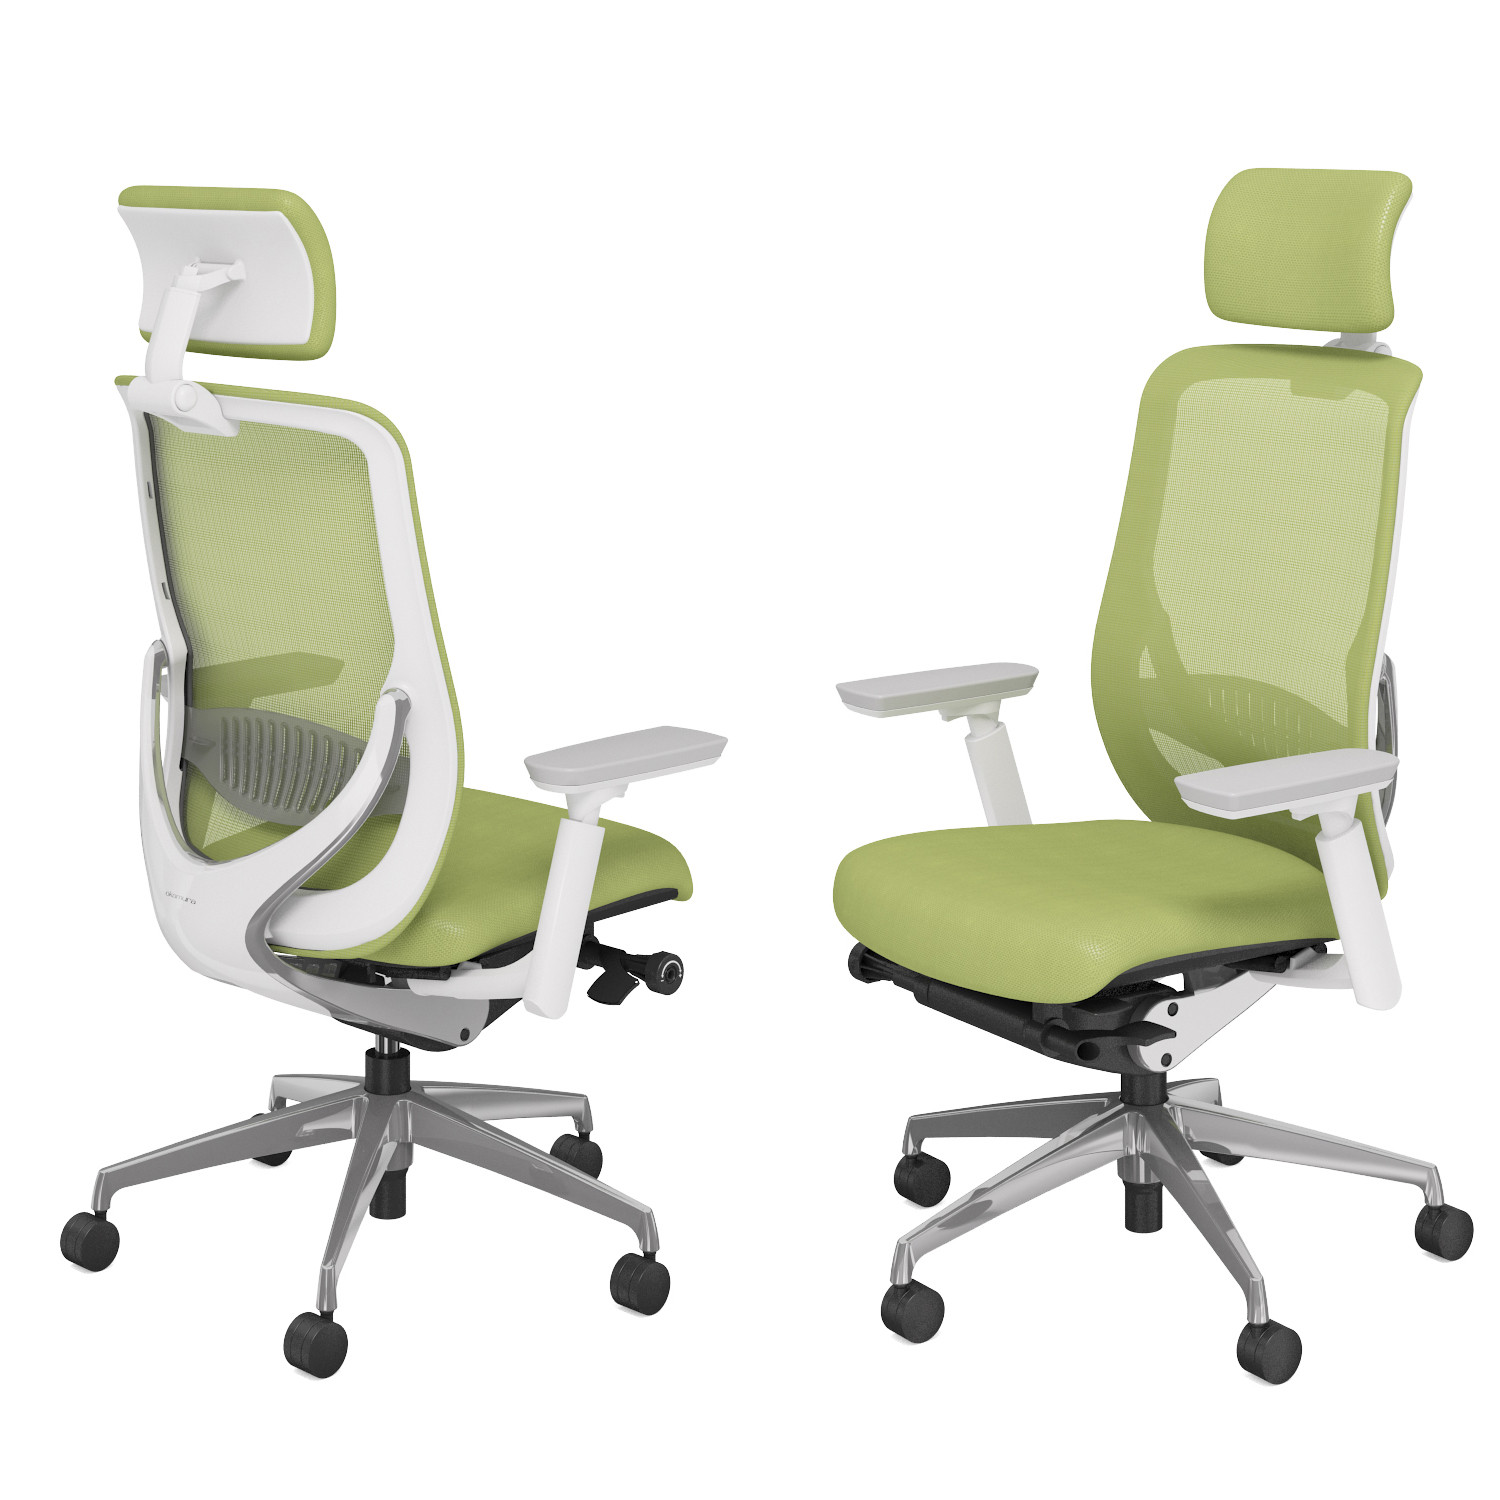 Zephyr Light Office Chair